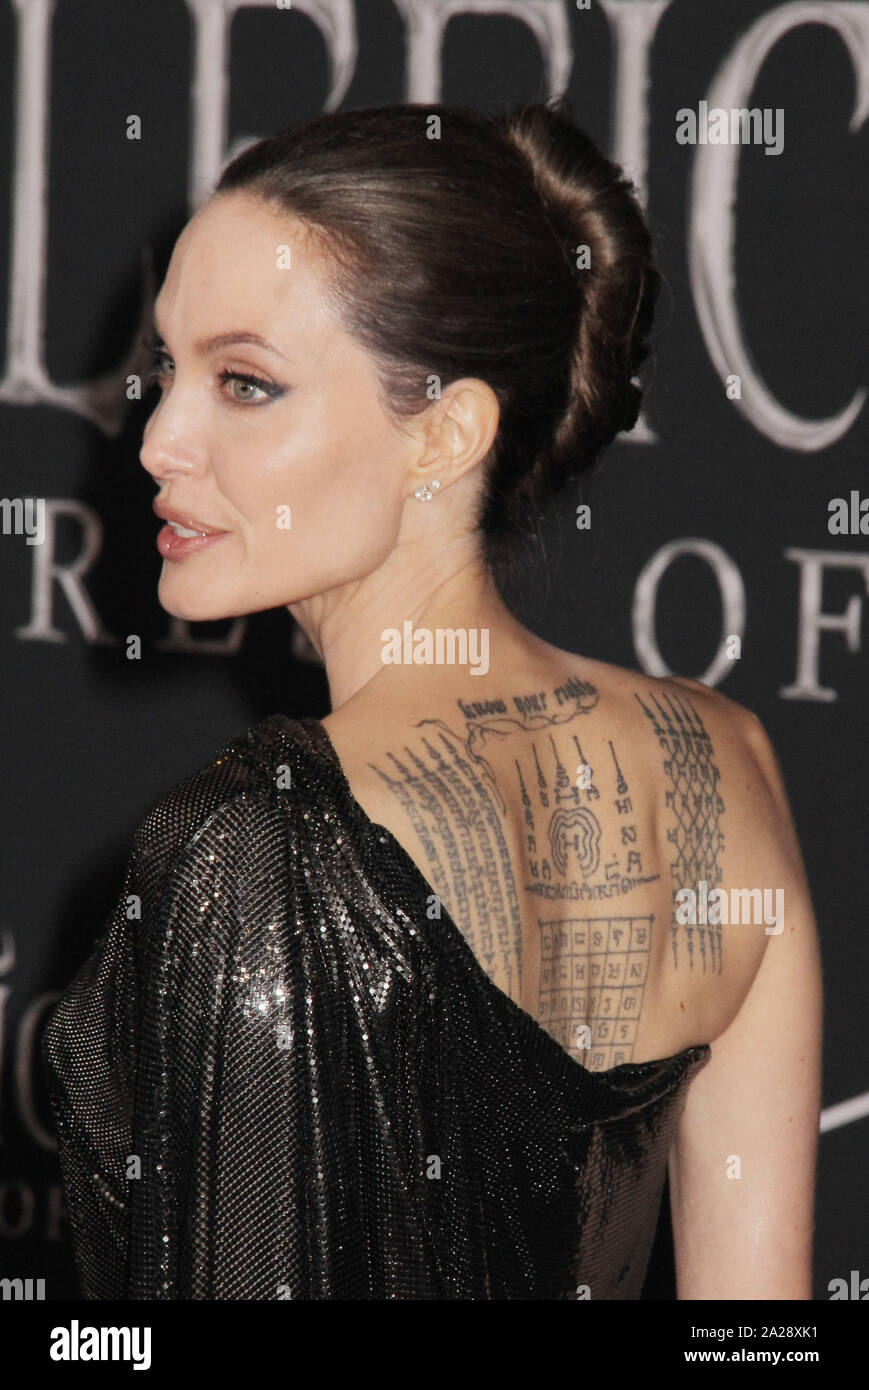 Angelina Jolie 09 30 2019 The World Premiere Of Maleficent